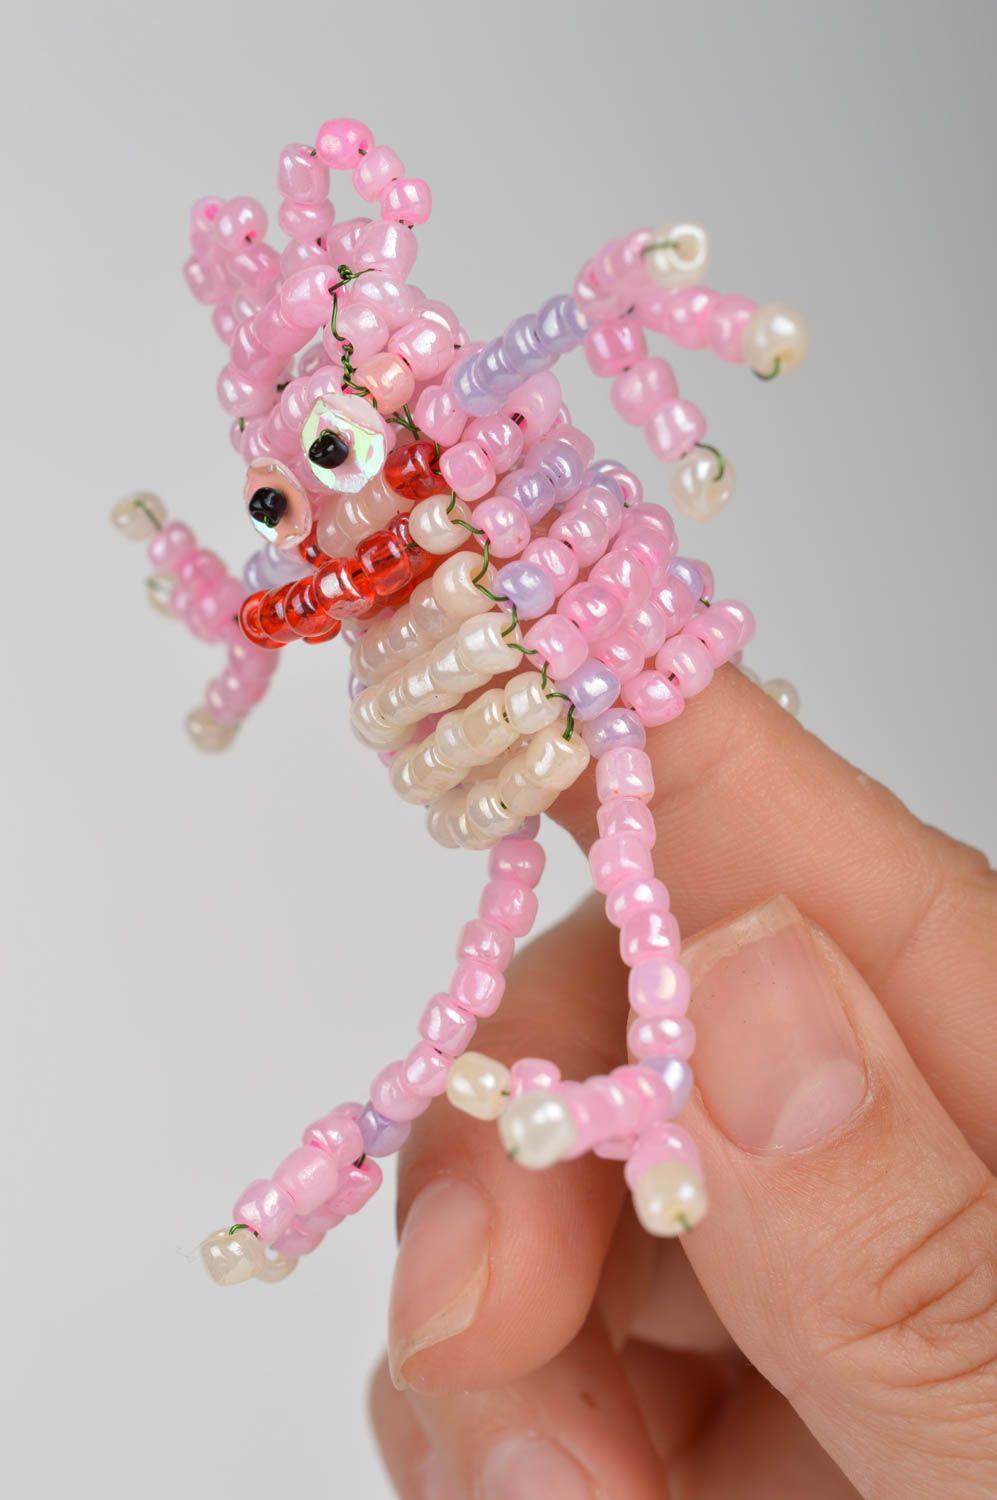 Handmade cute pink funny toy for finger in shape of frog made of beads - MADEheart.com